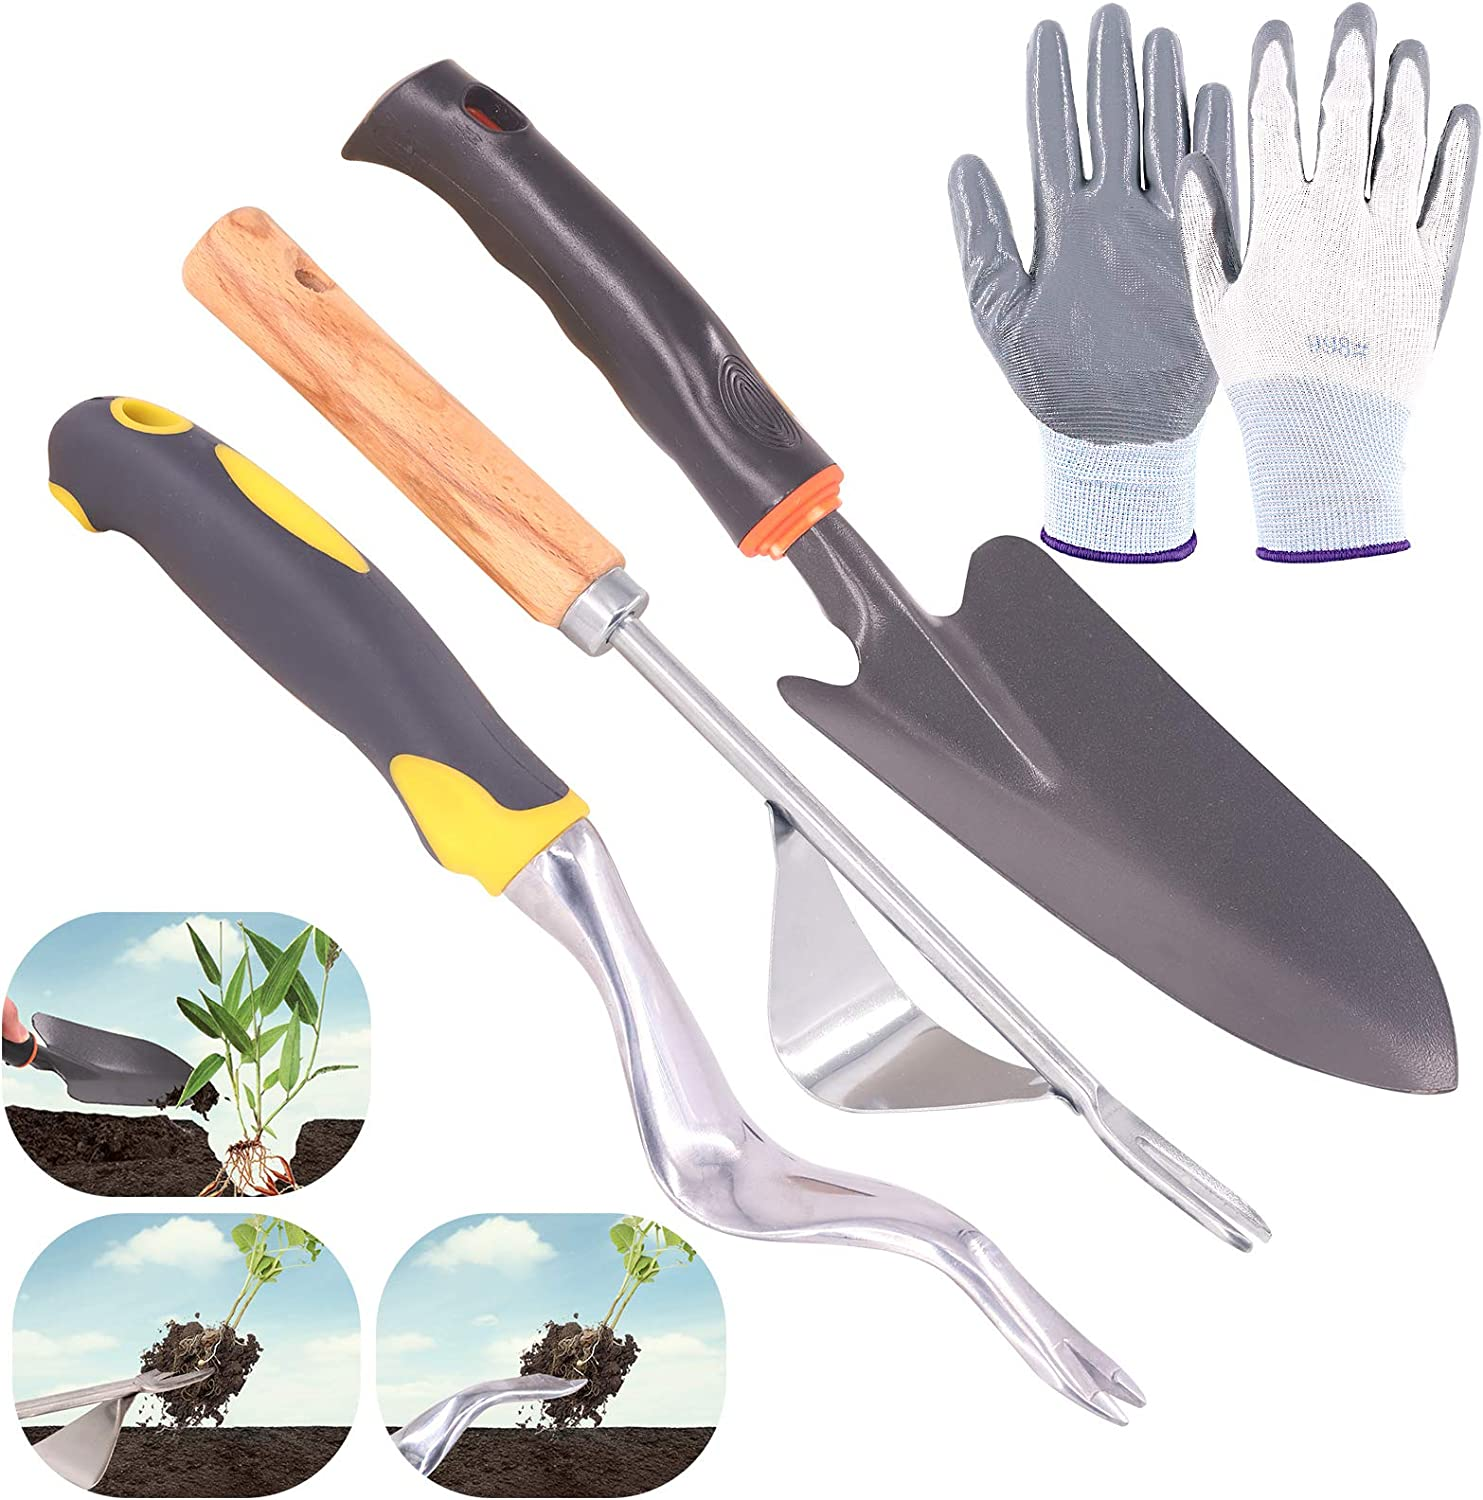 Glarks 5Pcs Hand Weeder Tool Set, 2Pcs Manual Weeder Weed Puller with Hand Trowel and a Pair Anti-Cutting Gloves for Garden Lawn Yard Weed Removel